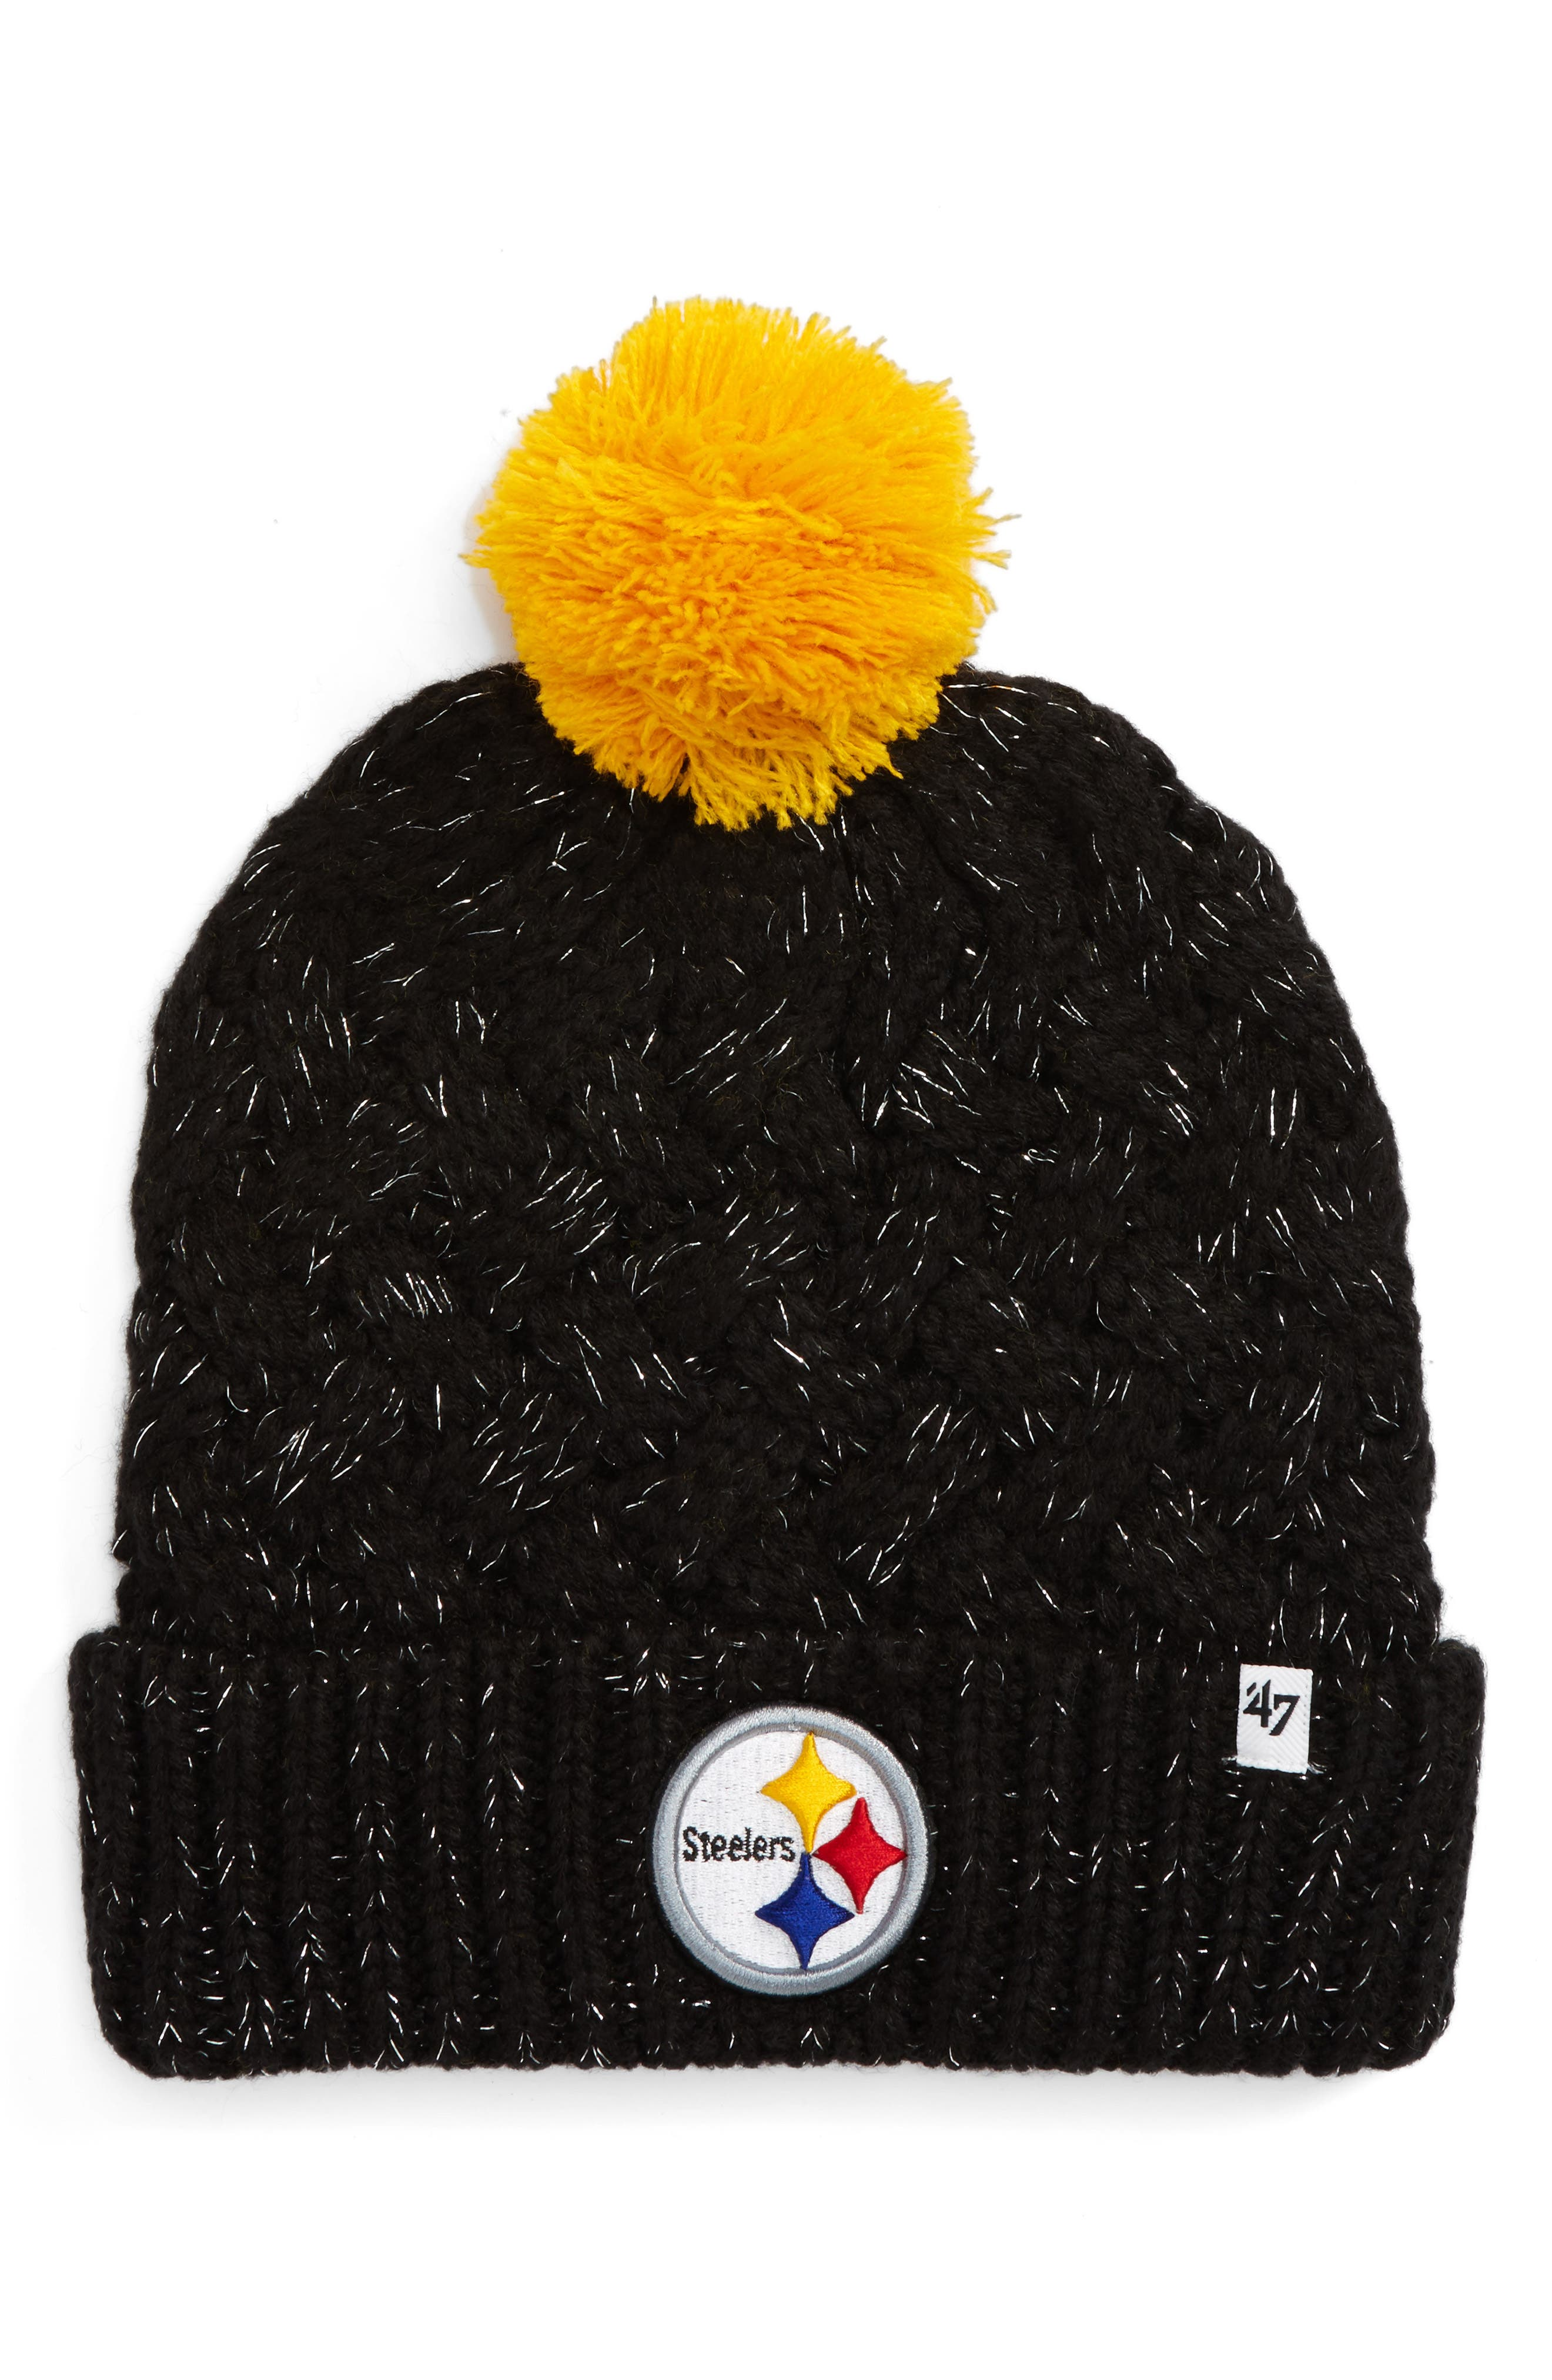 Alternate Image 1 Selected - '47 Fiona Pittsburgh Steelers Pom Beanie